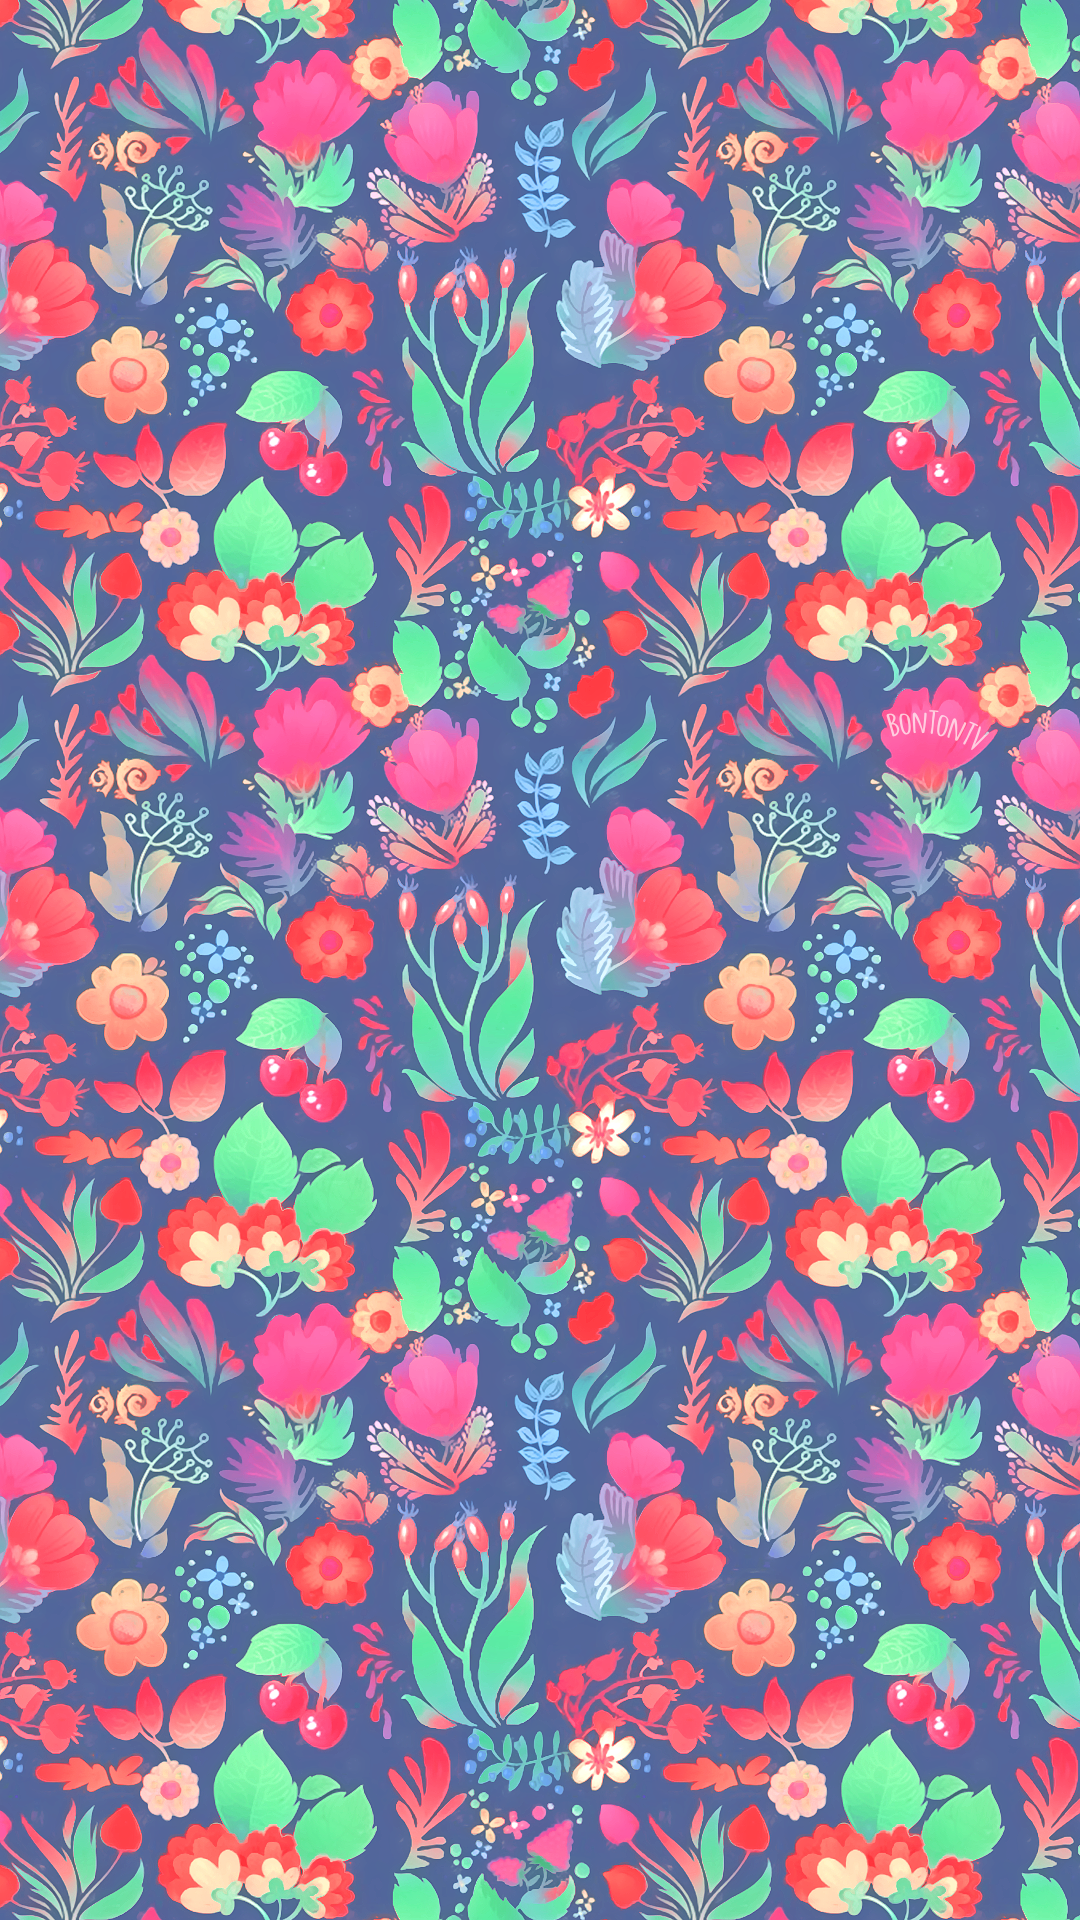 Phone Wallpapers Hd Colorful Flowers By Bonton Tv Free Backgrounds 1080x1920 Wallpapers Iphone Hd Wallpaper Girly Color Wallpaper Iphone Phone Wallpaper